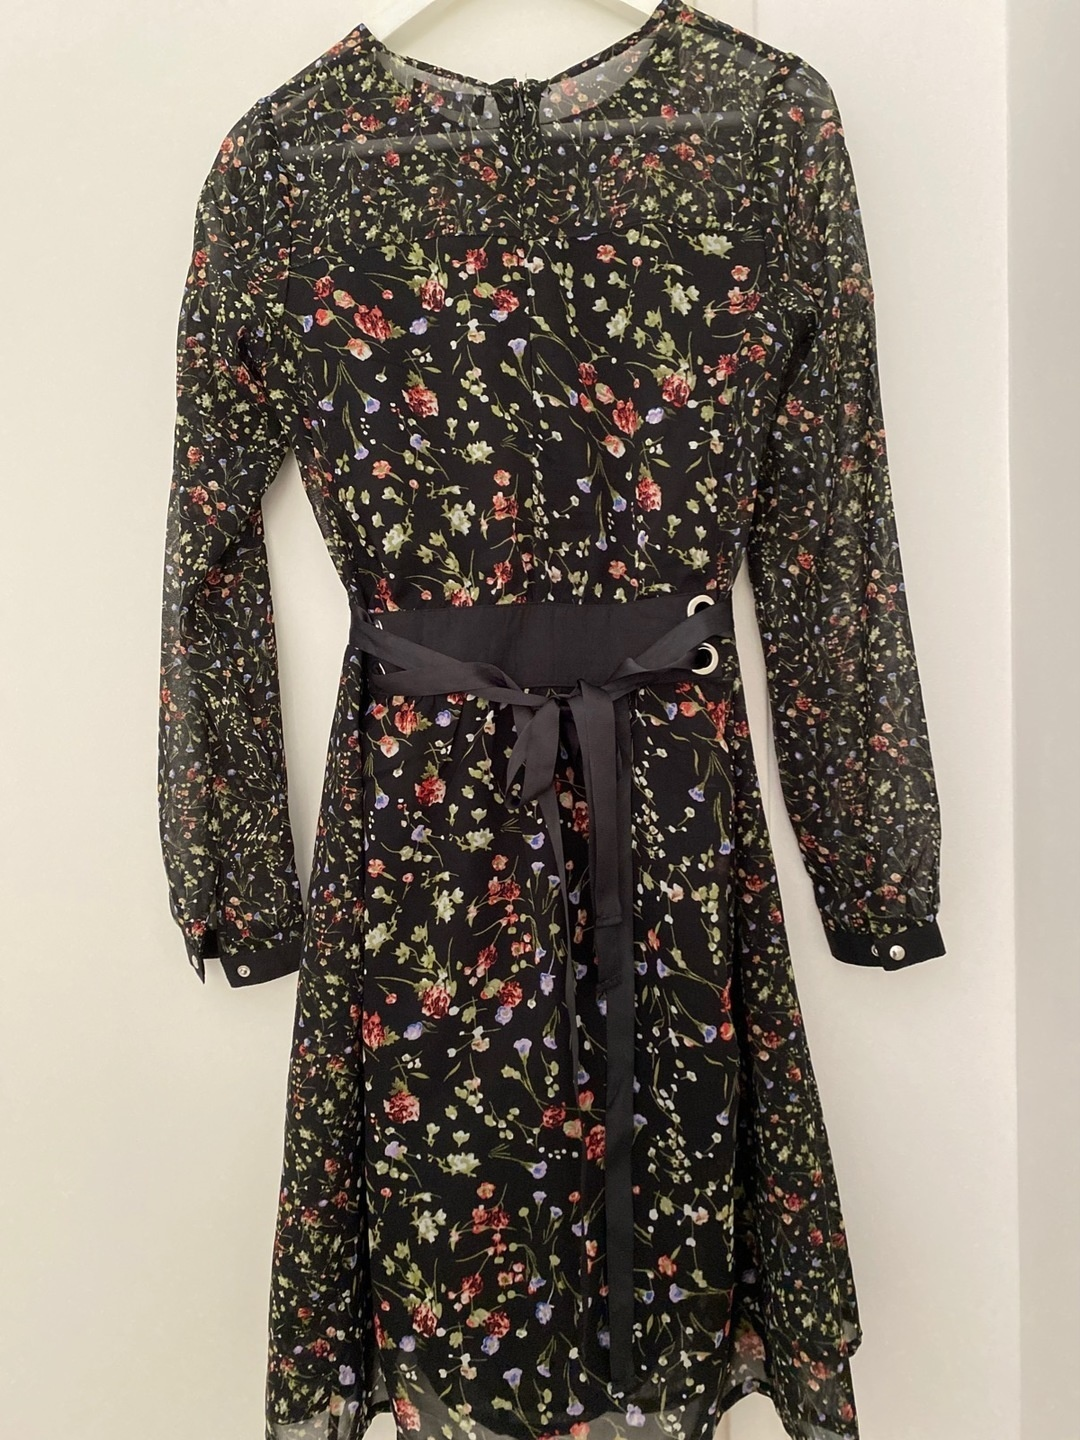 Women's dresses - RESERVED photo 3